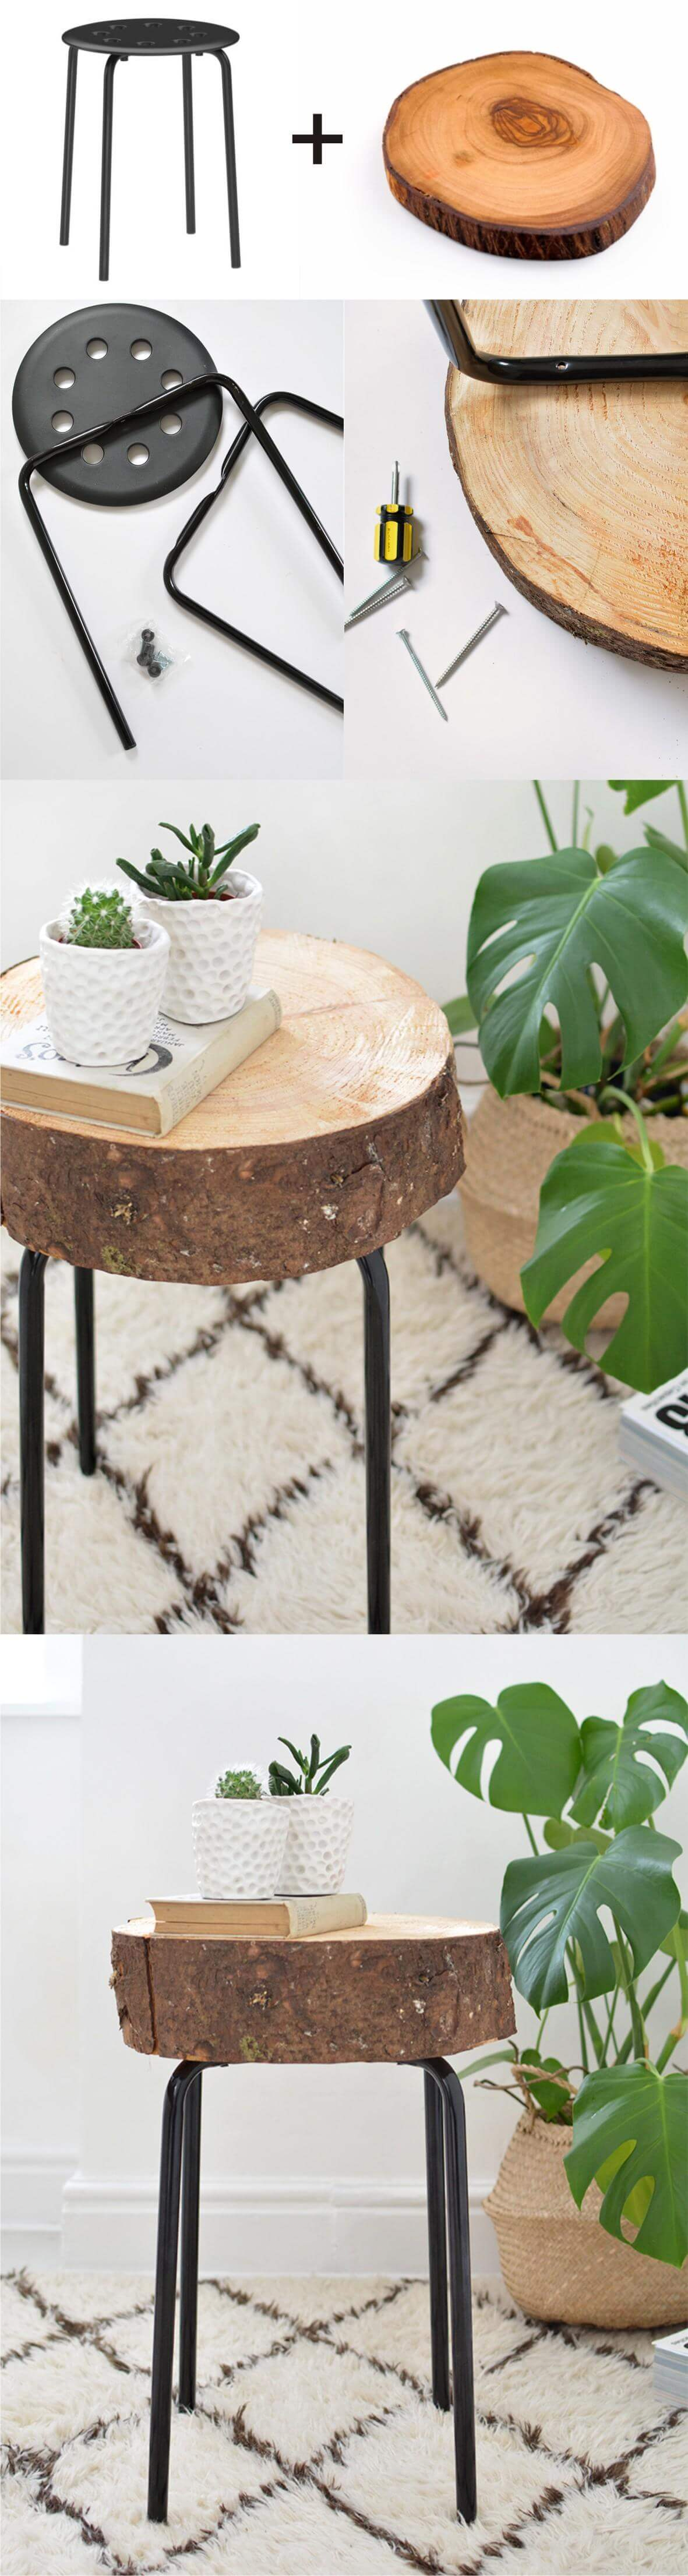 Piece-By-Piece Hand Assembled Wooden Slice Table